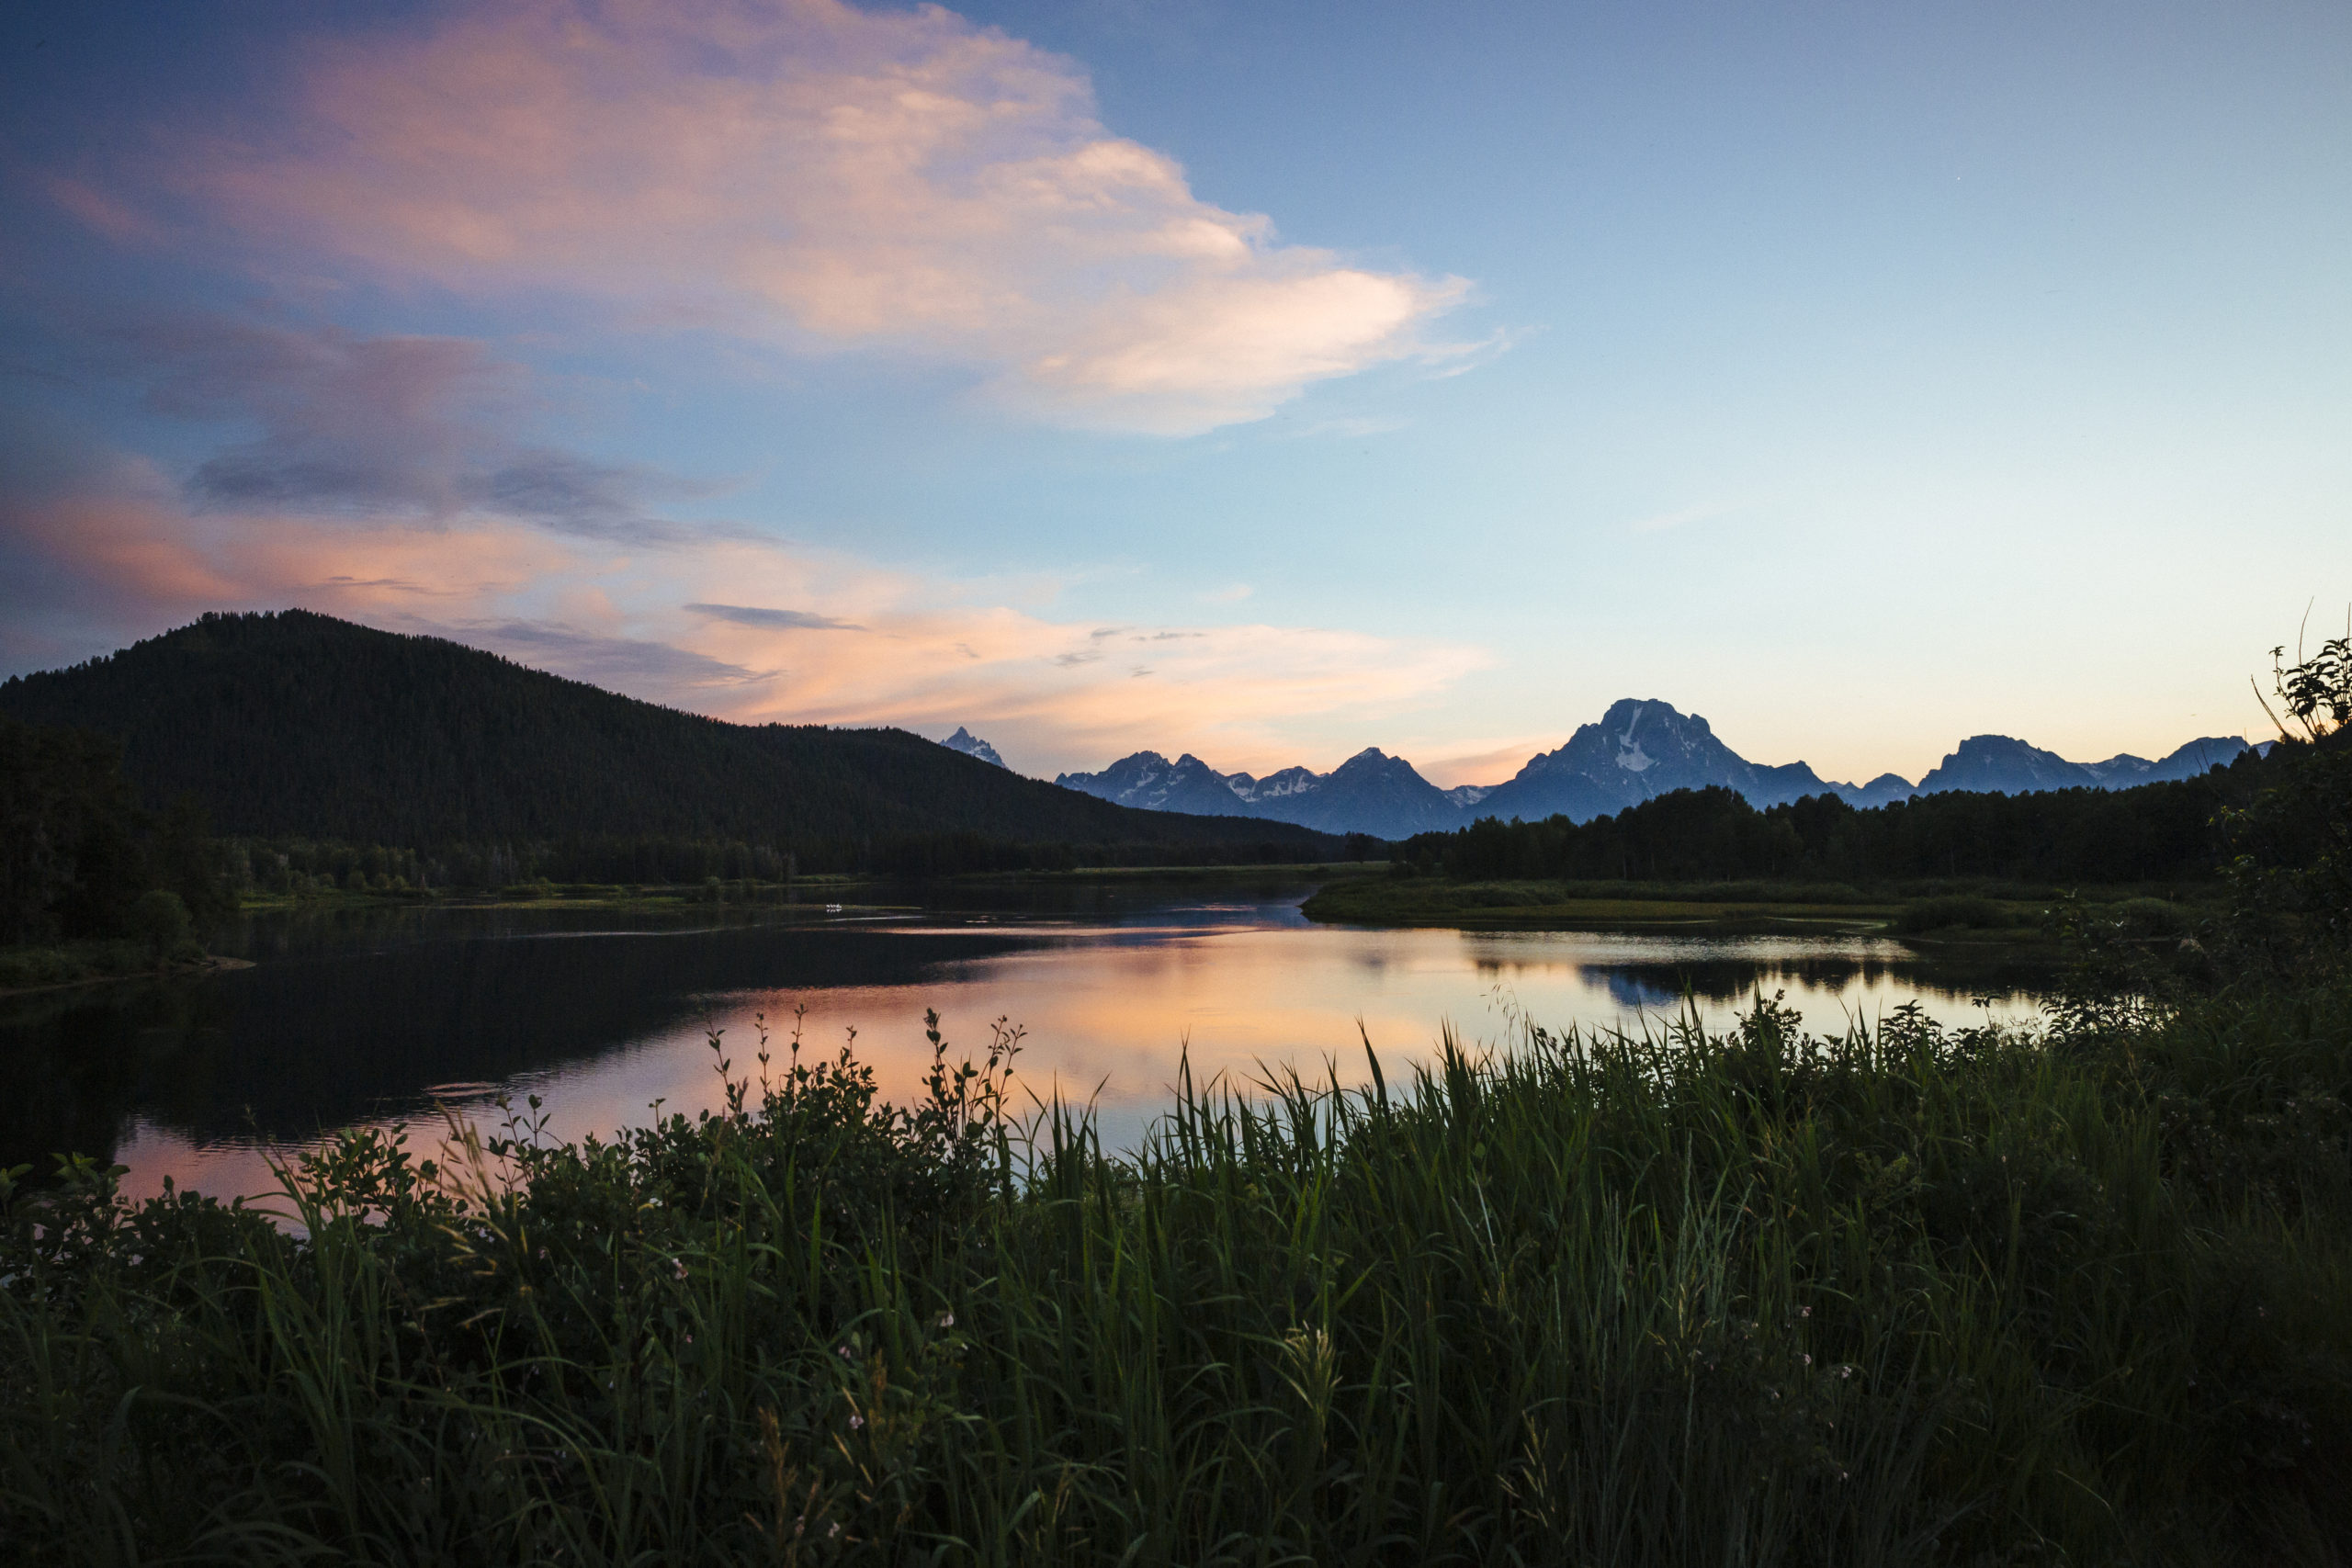 Sunset in Grand Teton National Park, Wyoming